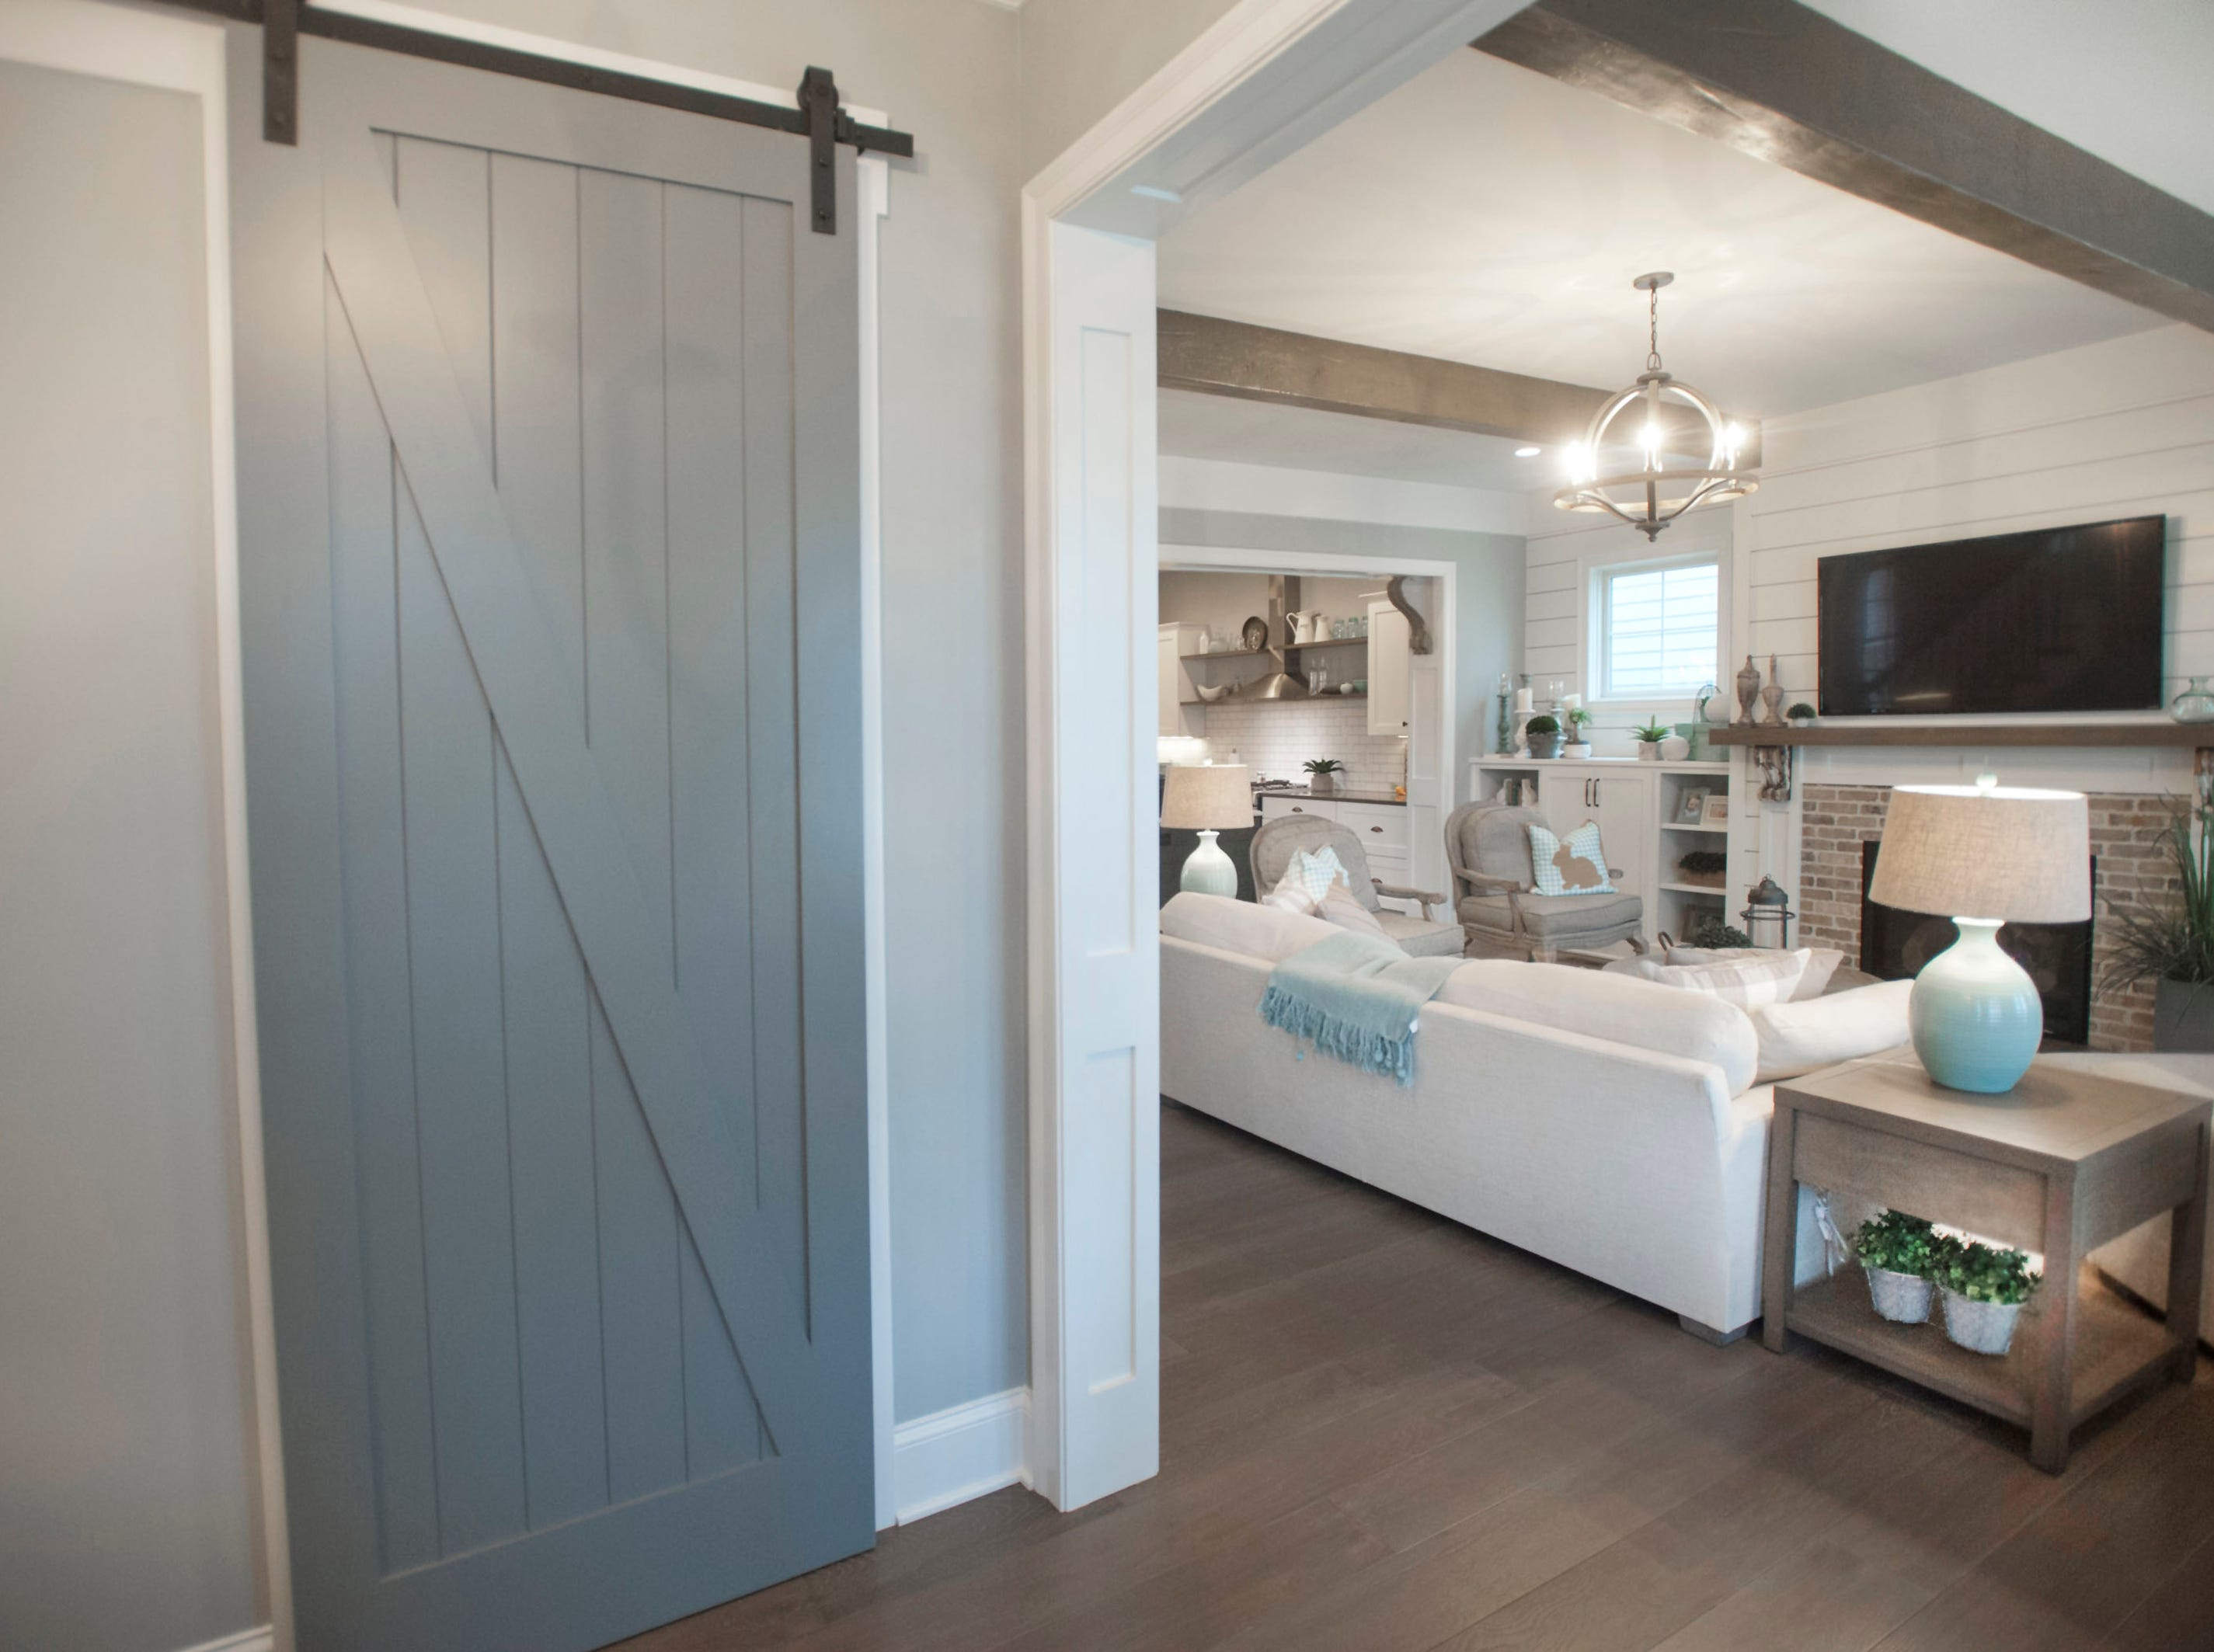 The entrance foyer of the Hannah home in Norton Commons features a coat closet with a barn door. The living room is at right.01 March 2019